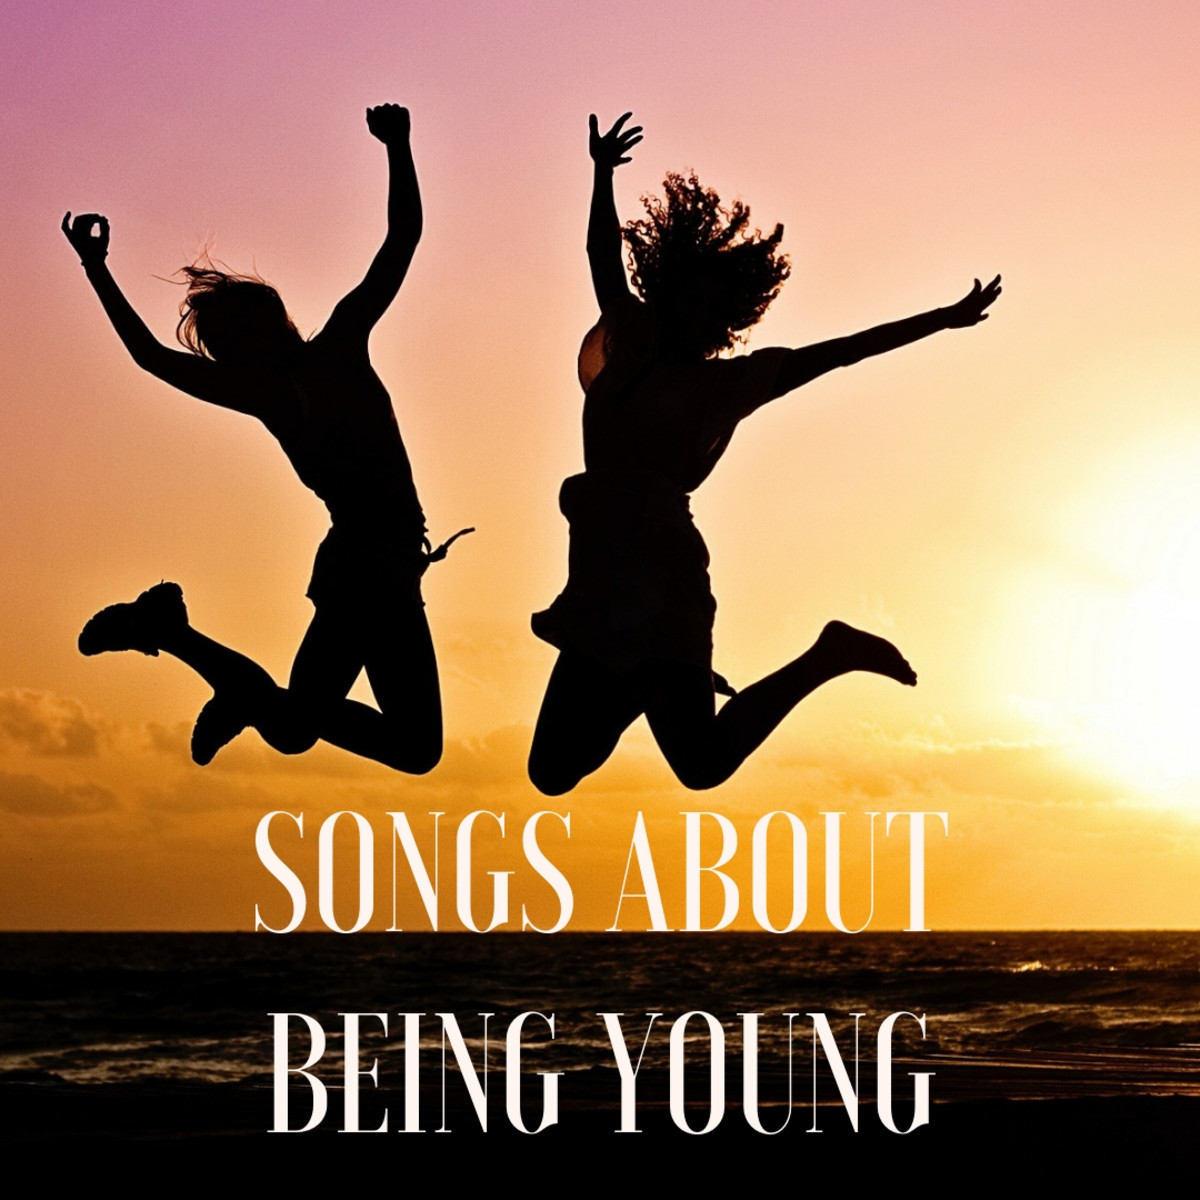 85 Songs About Being Young